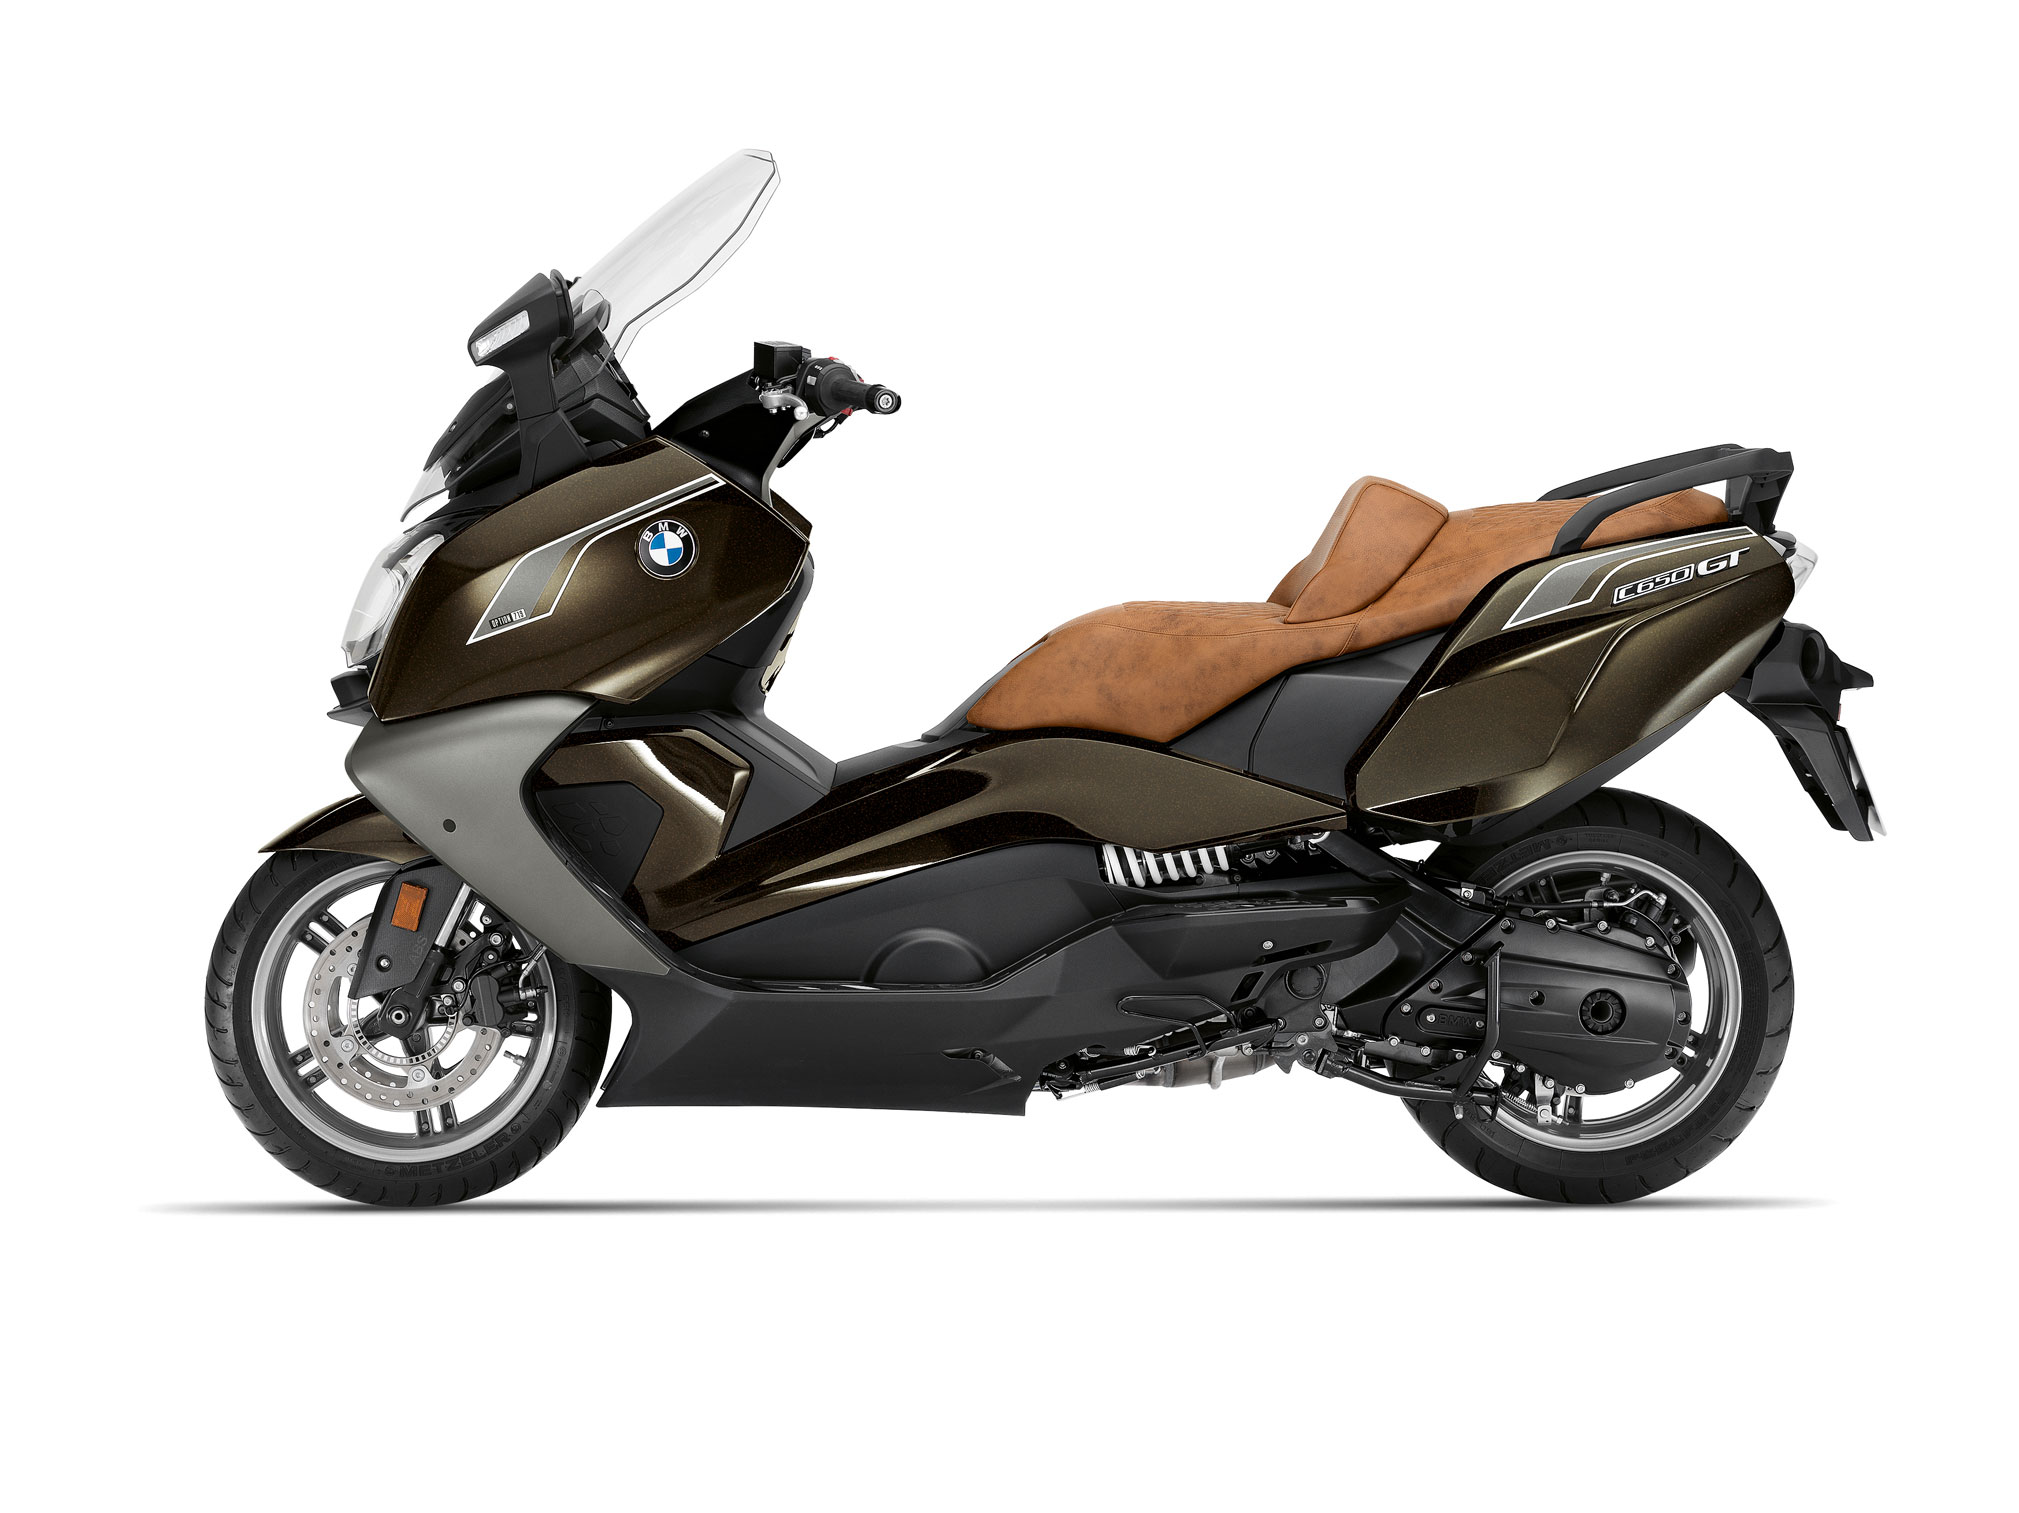 2019 bmw c650gt guide totalmotorcycle. Black Bedroom Furniture Sets. Home Design Ideas